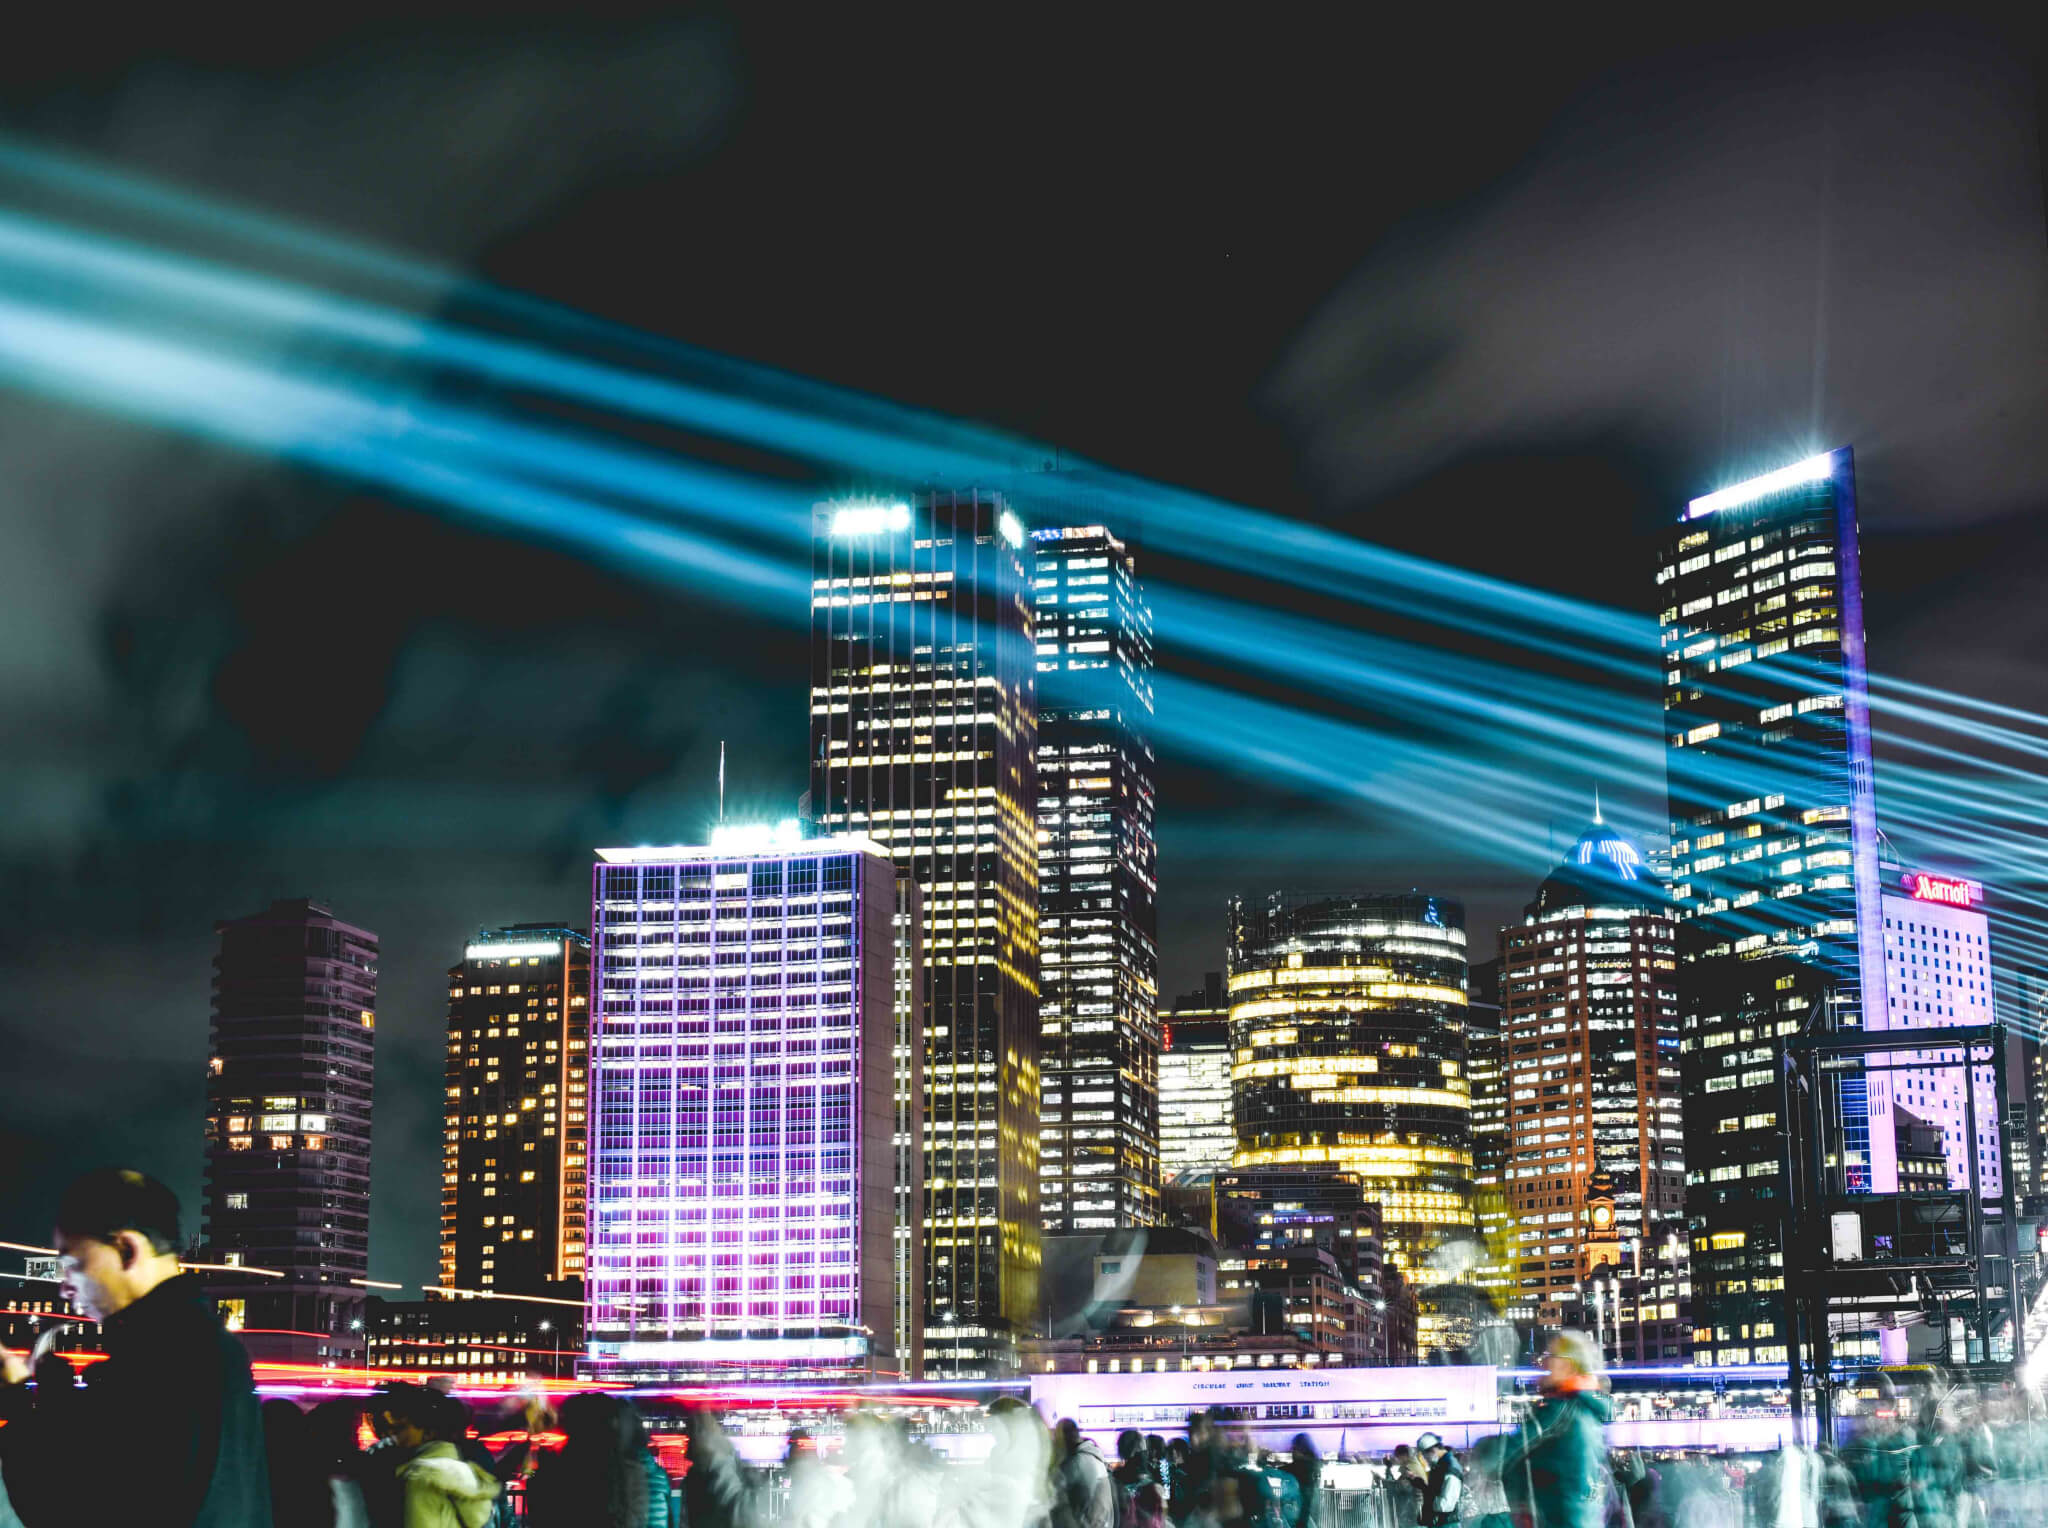 10 Startups Shaping The Future of Smart Cities